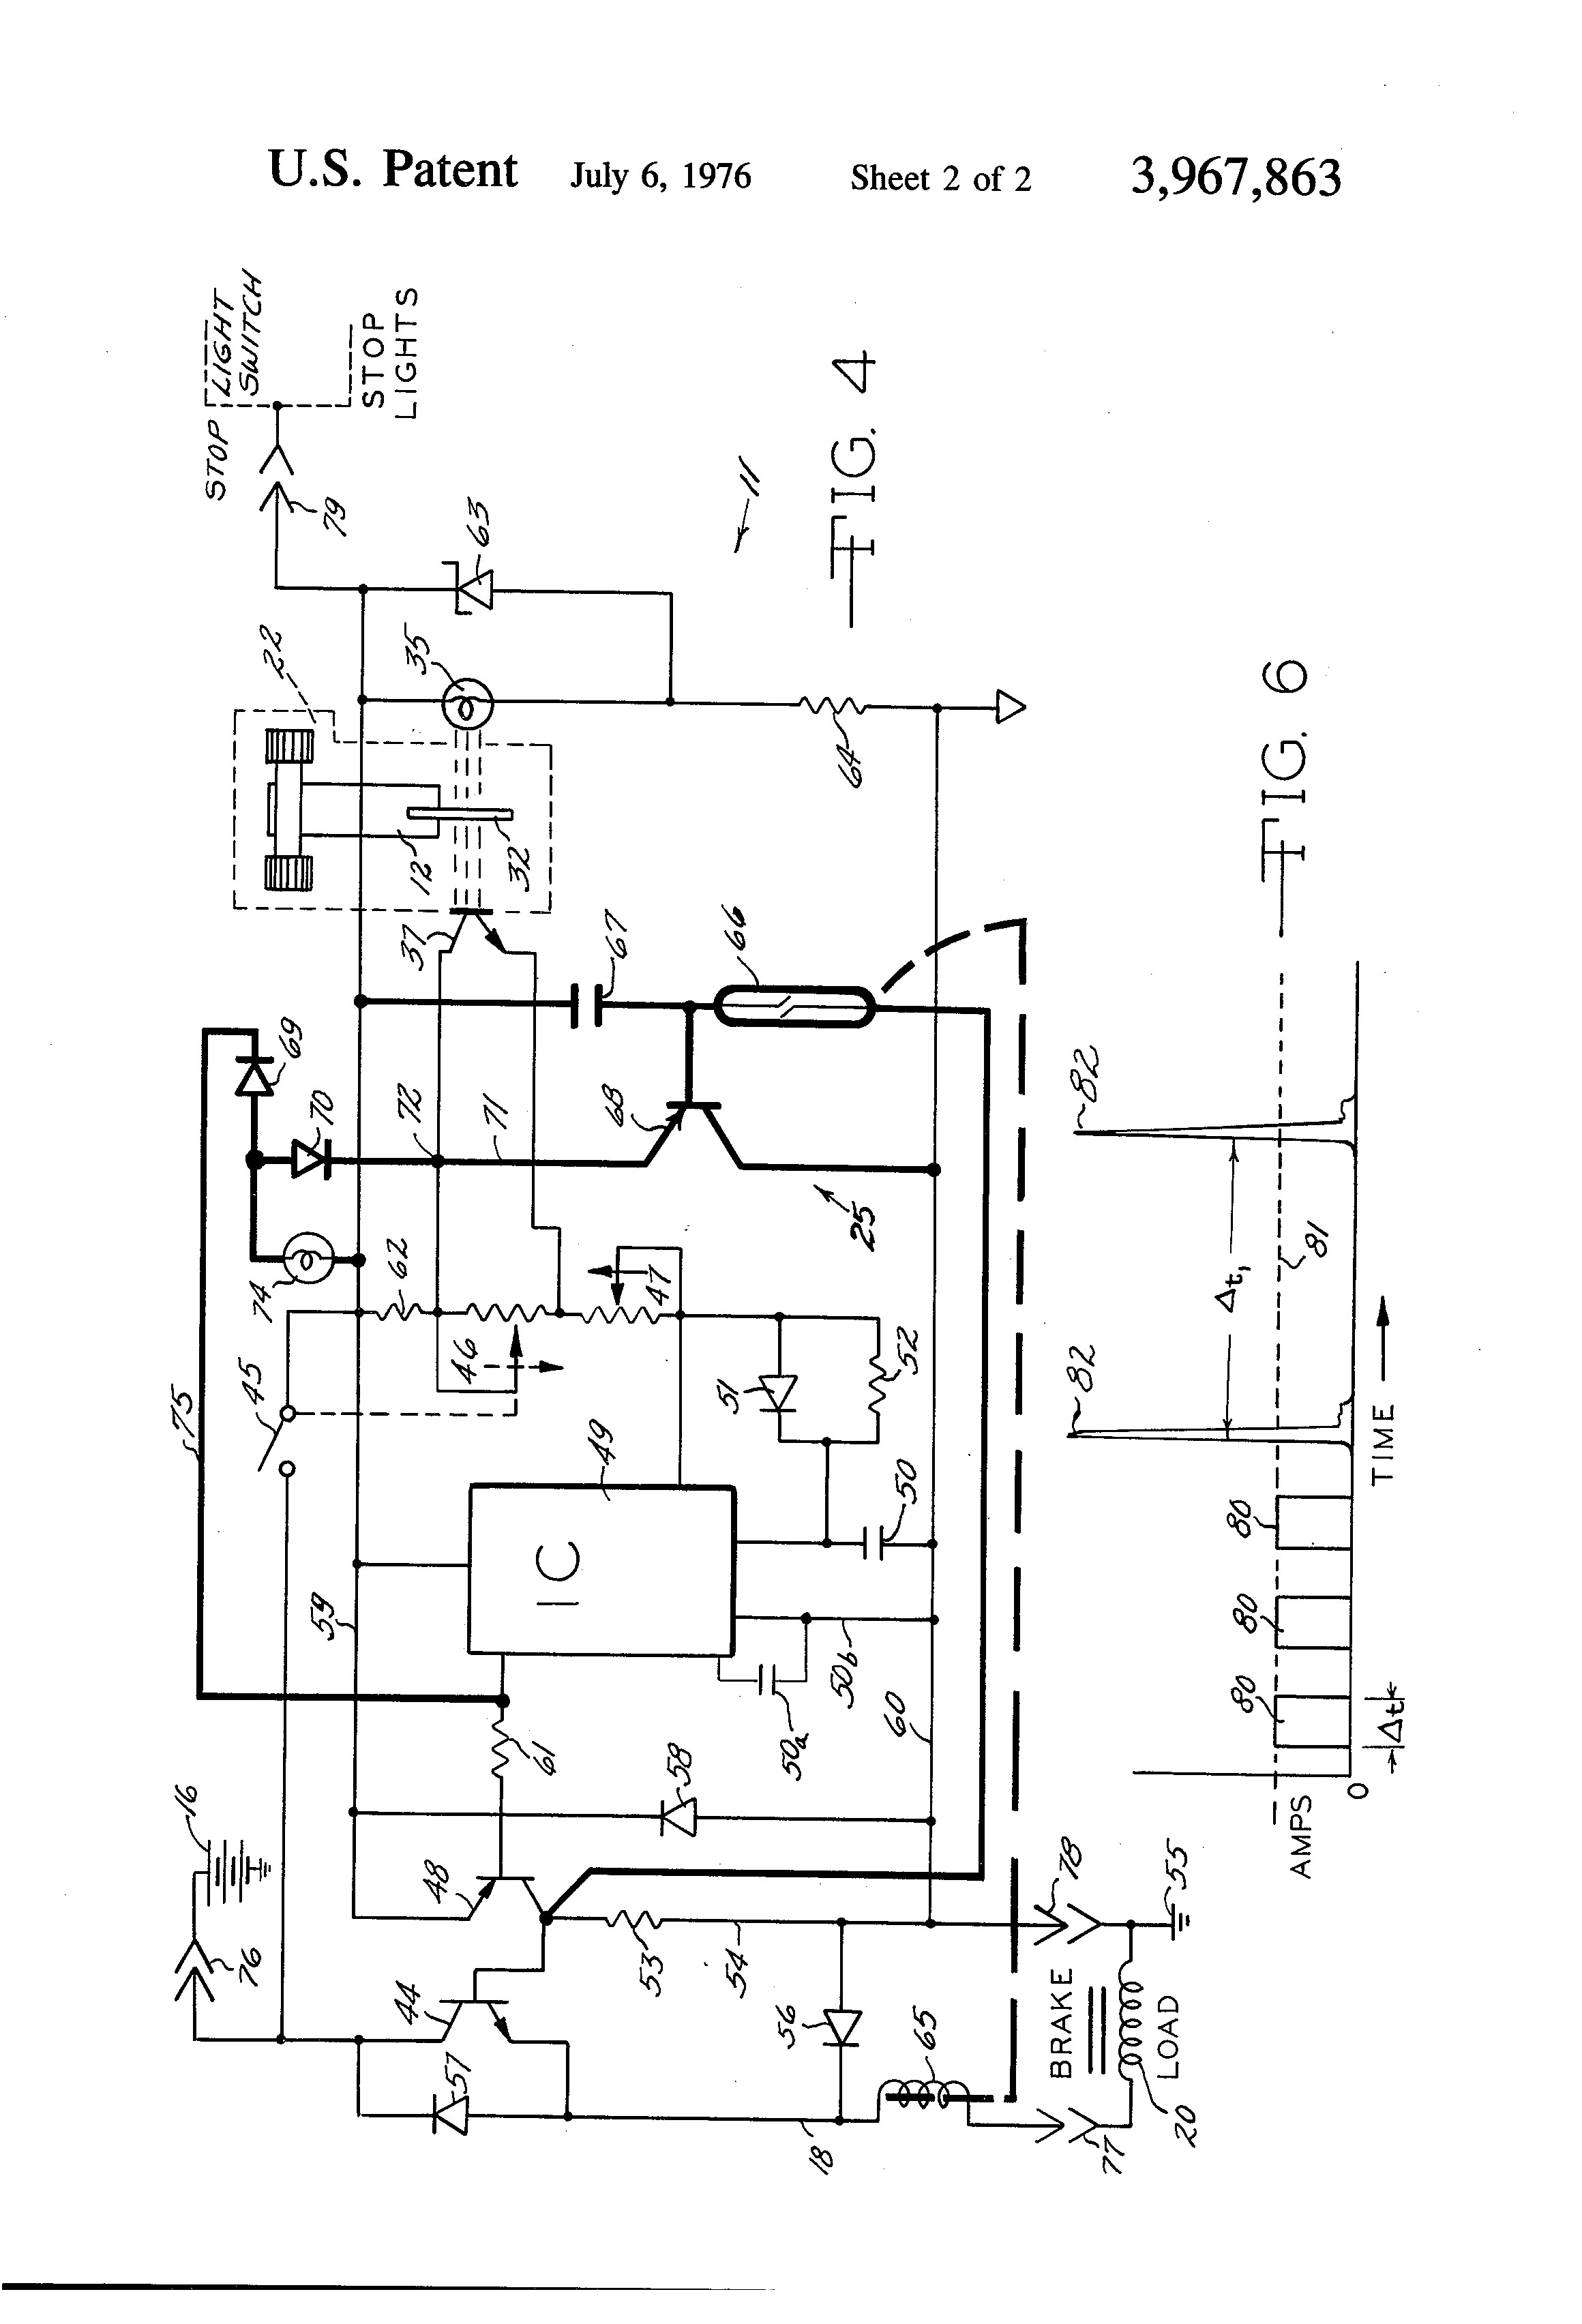 Primus Brake Controller Wiring Diagram Primus Iq Brake Controller Wiring Diagram Inspiration Prodigy P2 Of Primus Brake Controller Wiring Diagram